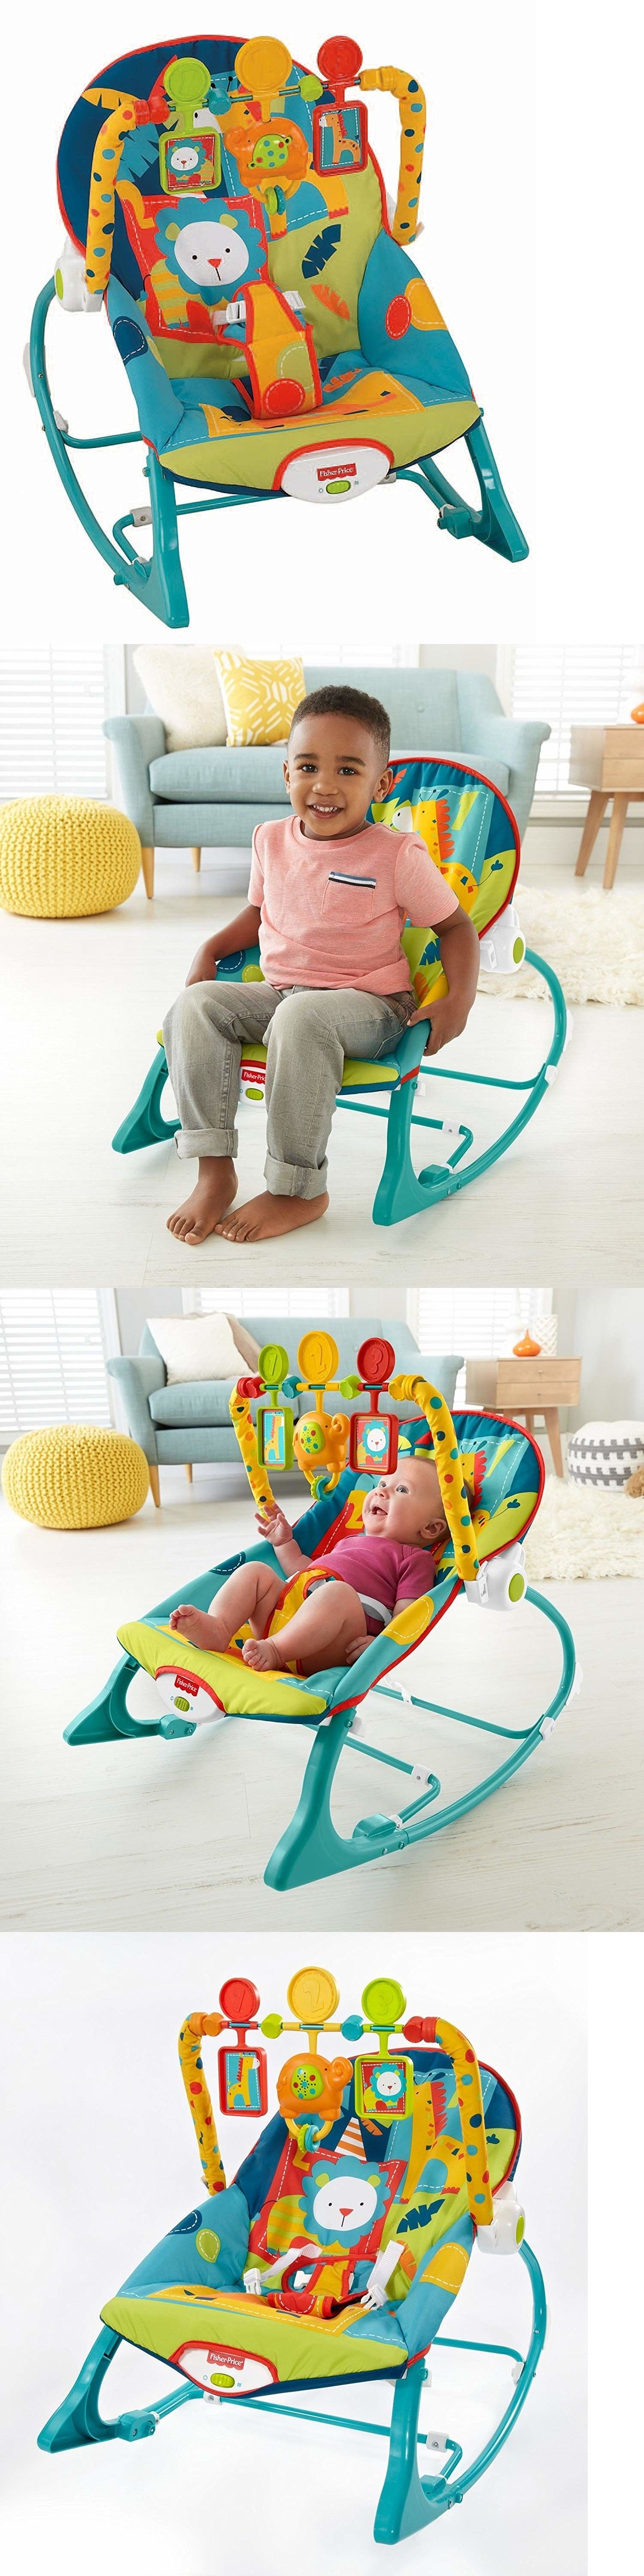 Infant Bouncy Chair Small Drop Leaf Table And Chairs Bouncers Vibrating 117034 Baby Rocking Toddler Removable Toys Plays Music Vibrates Buy It Now Only 33 92 On Ebay